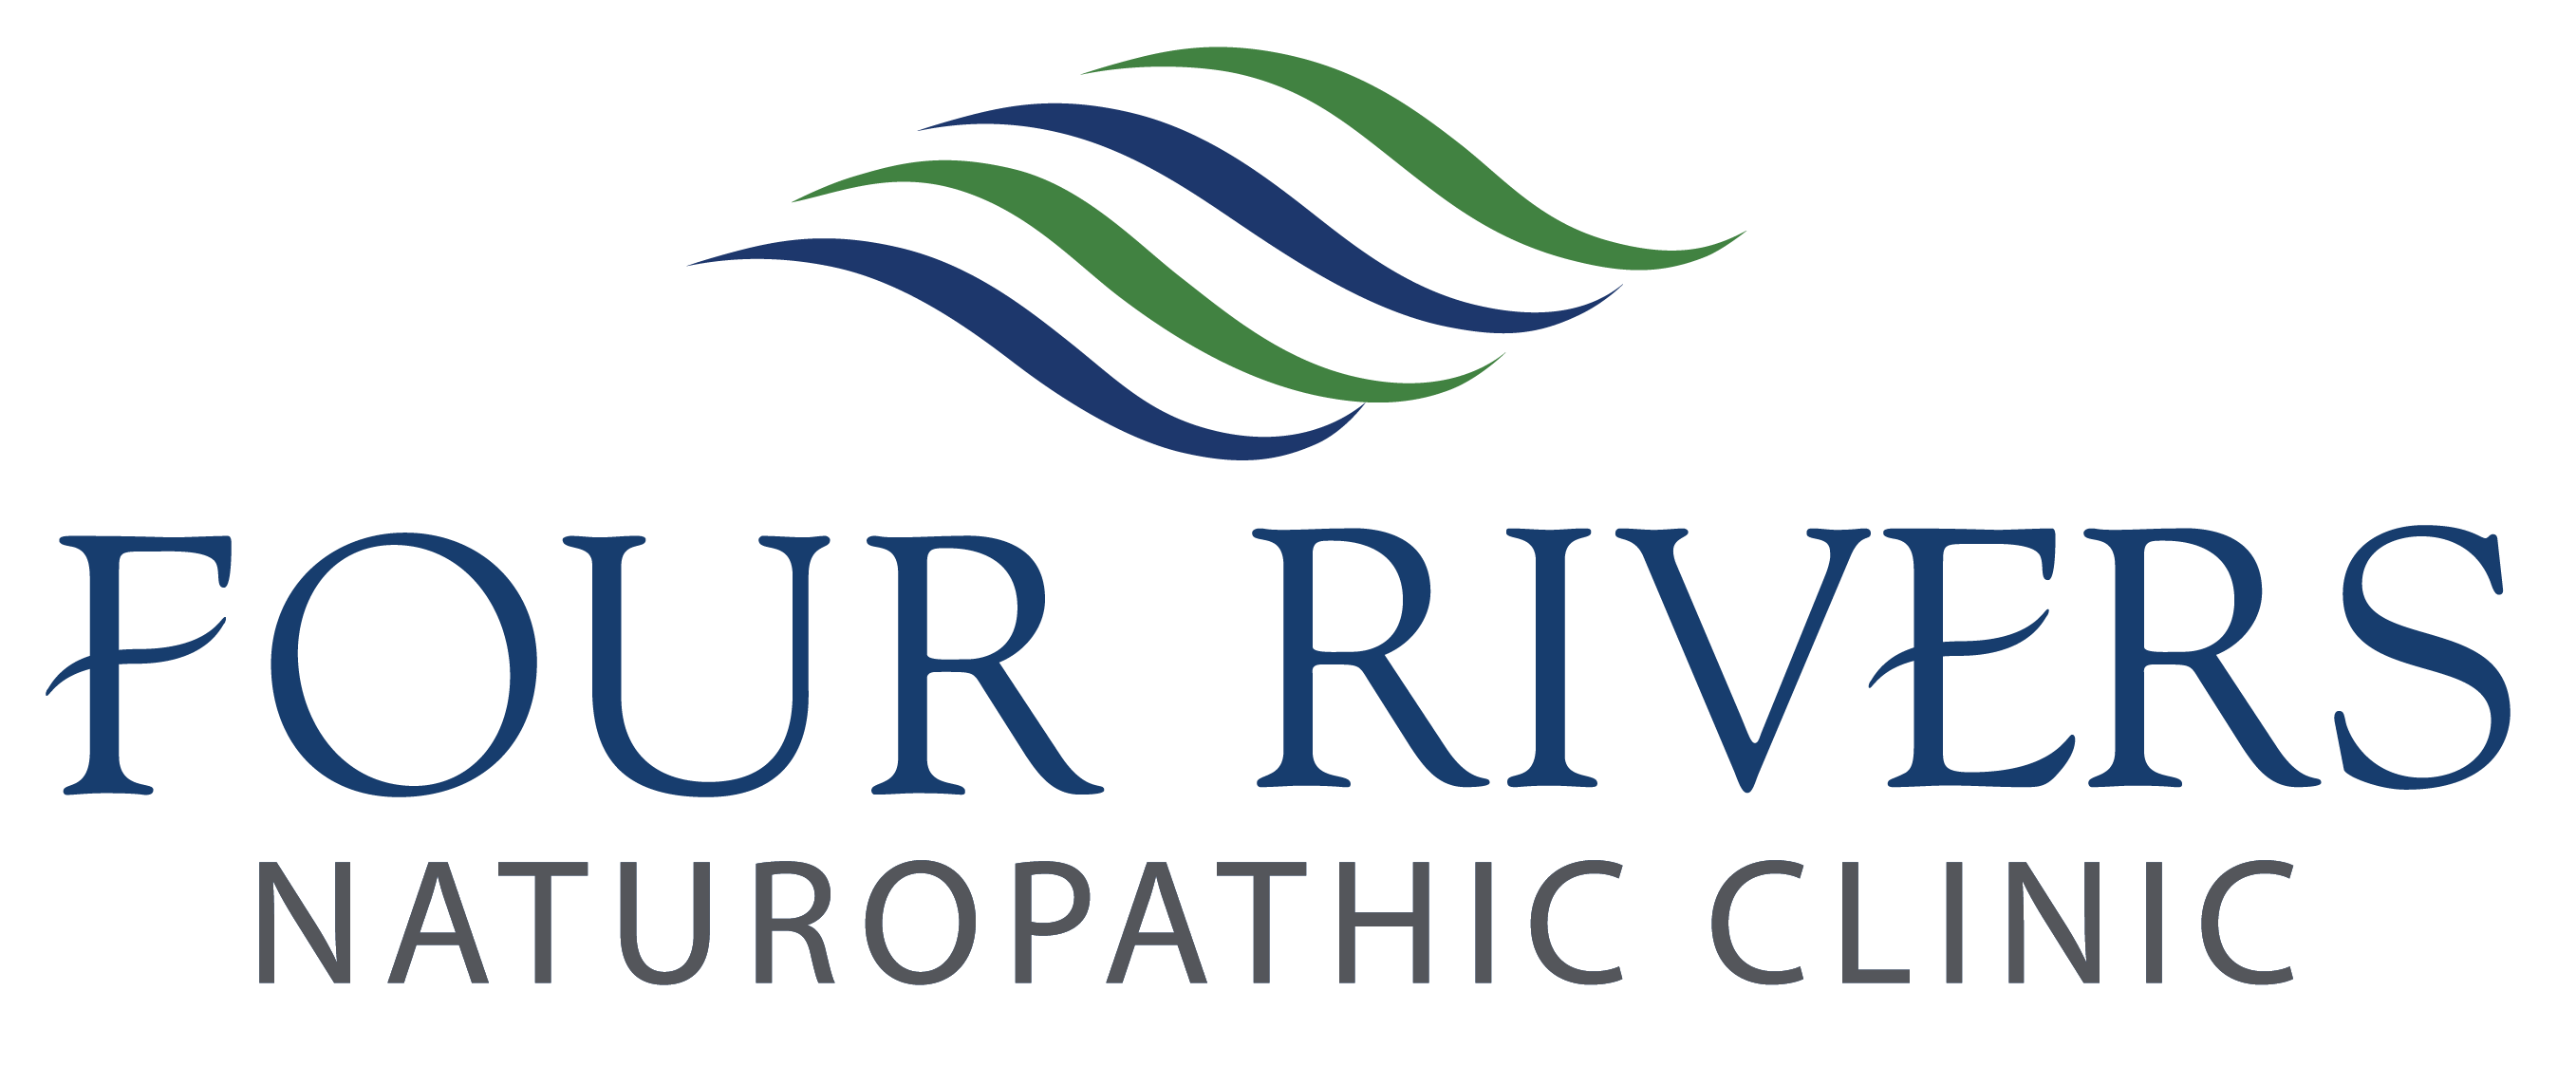 Four Rivers Naturopathic Clinic